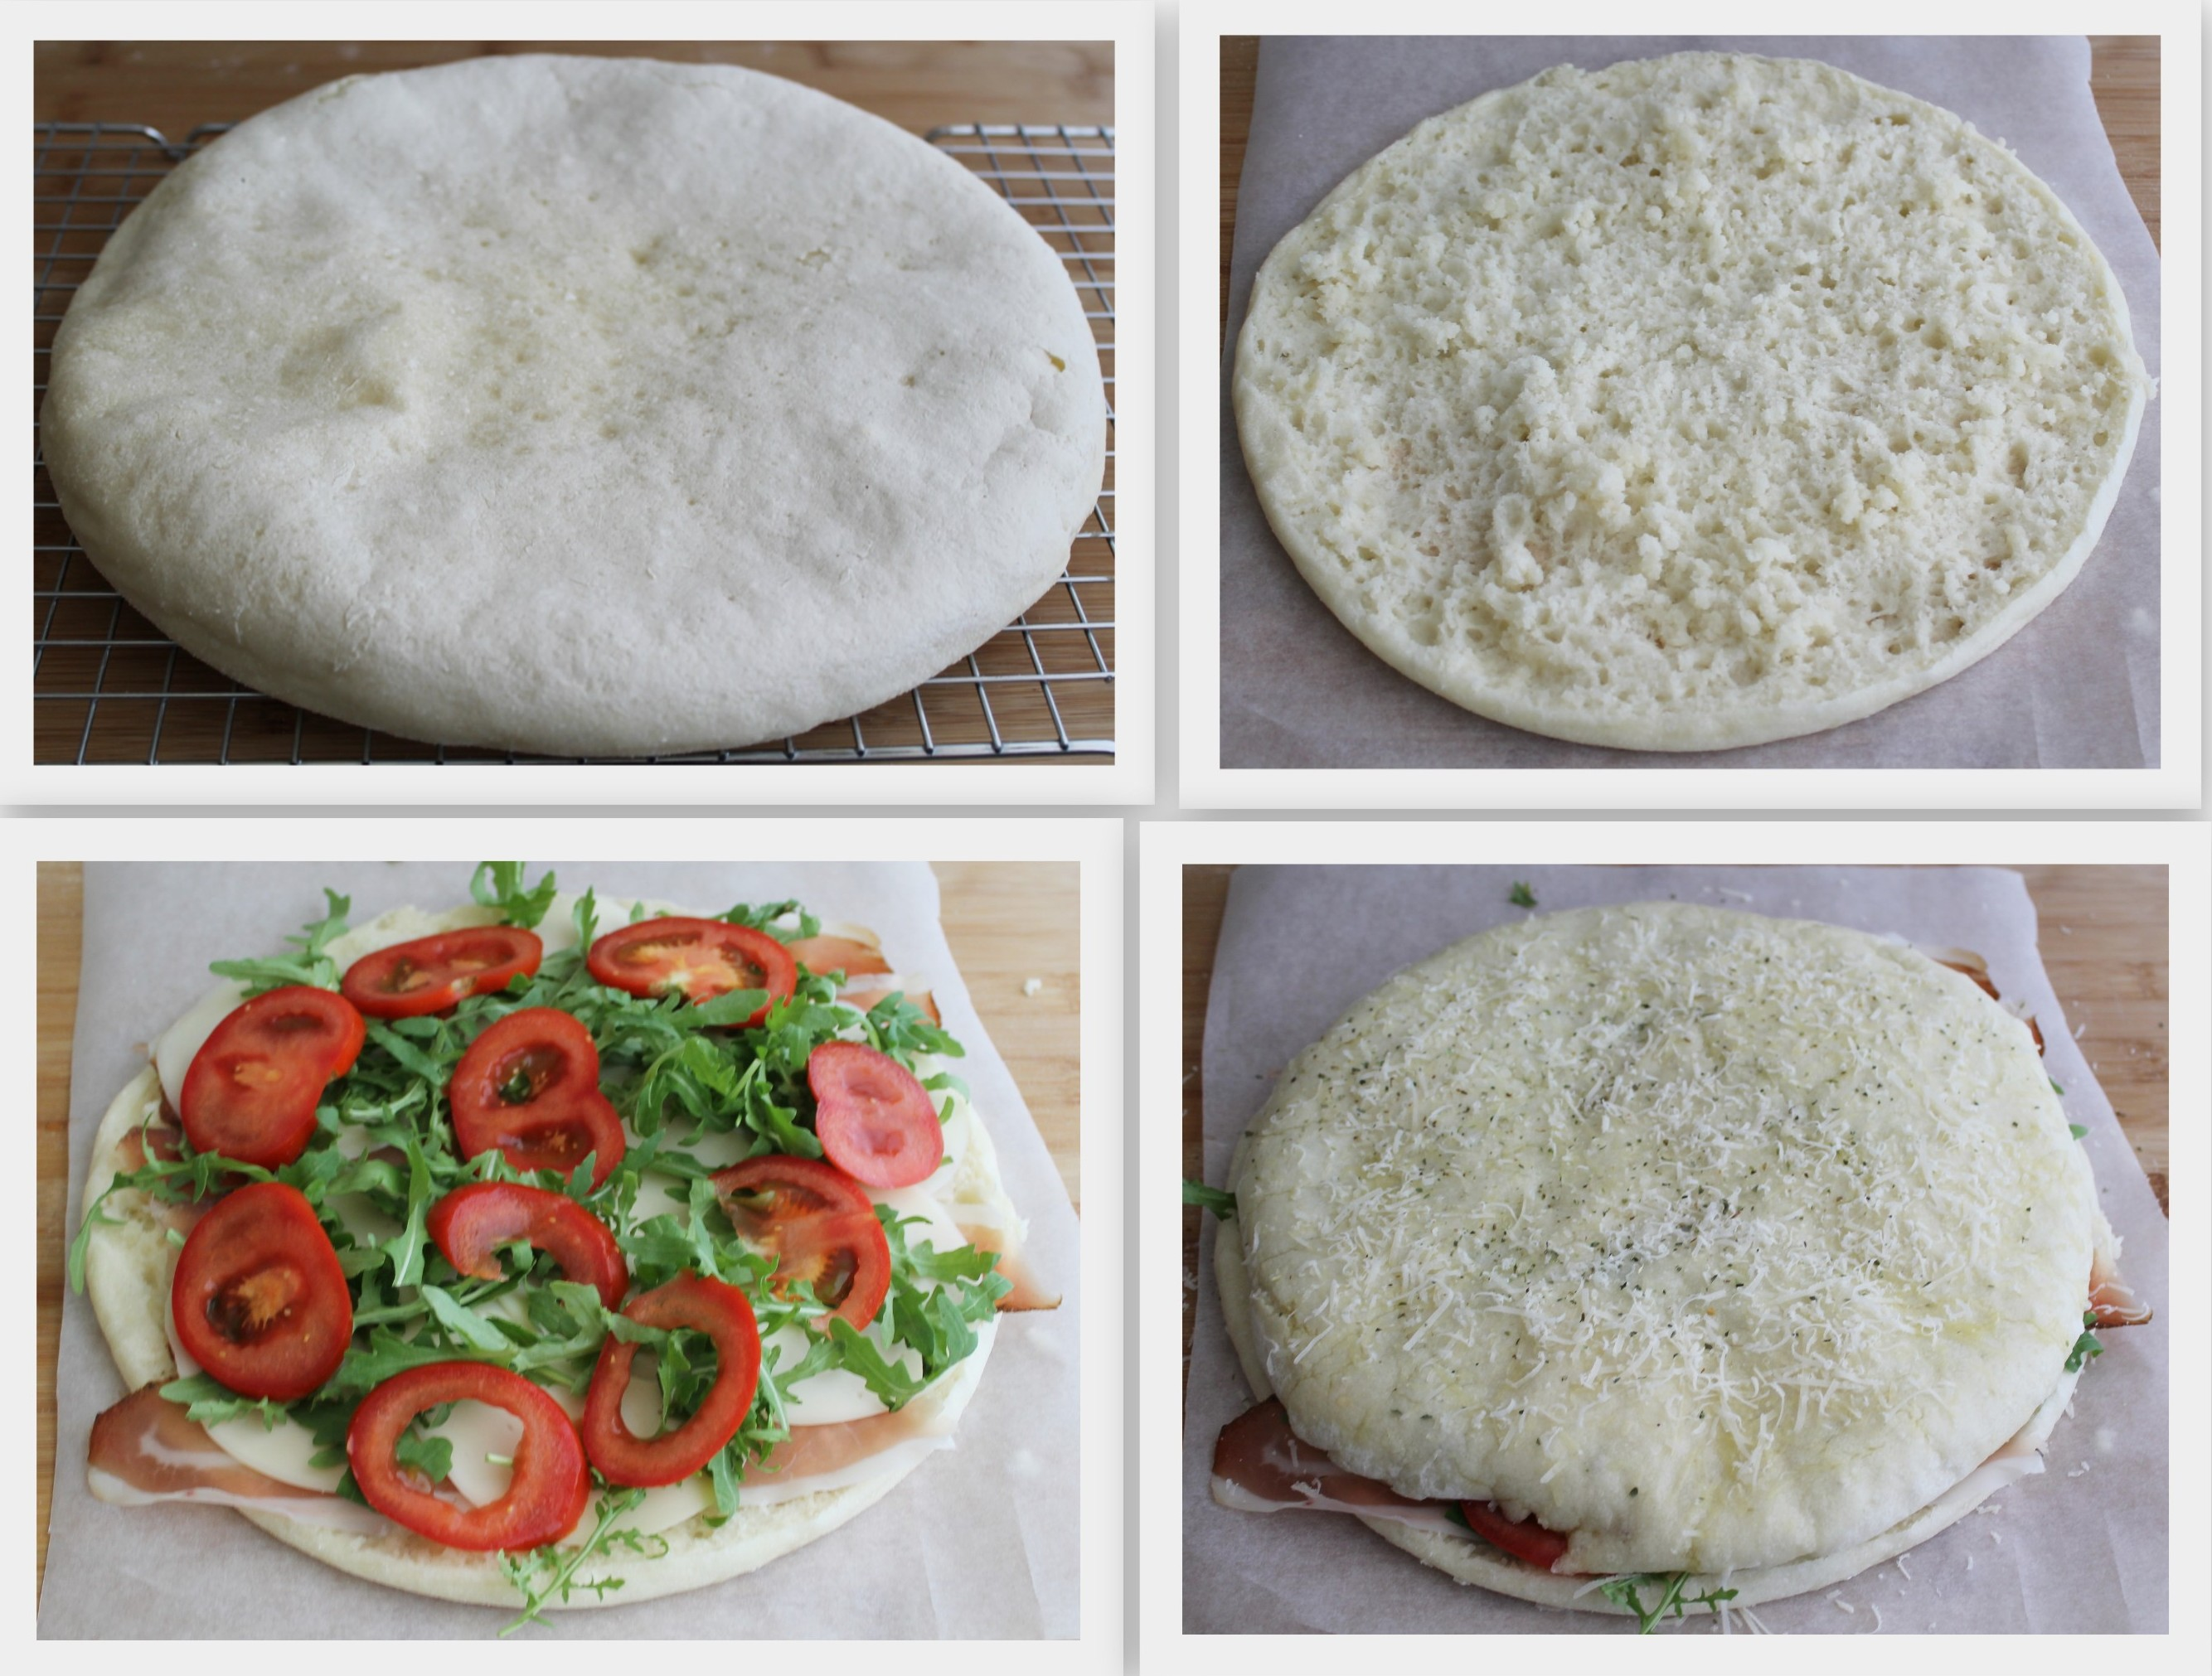 Pizzolo senza glutine - Gluten Free Travel and Living